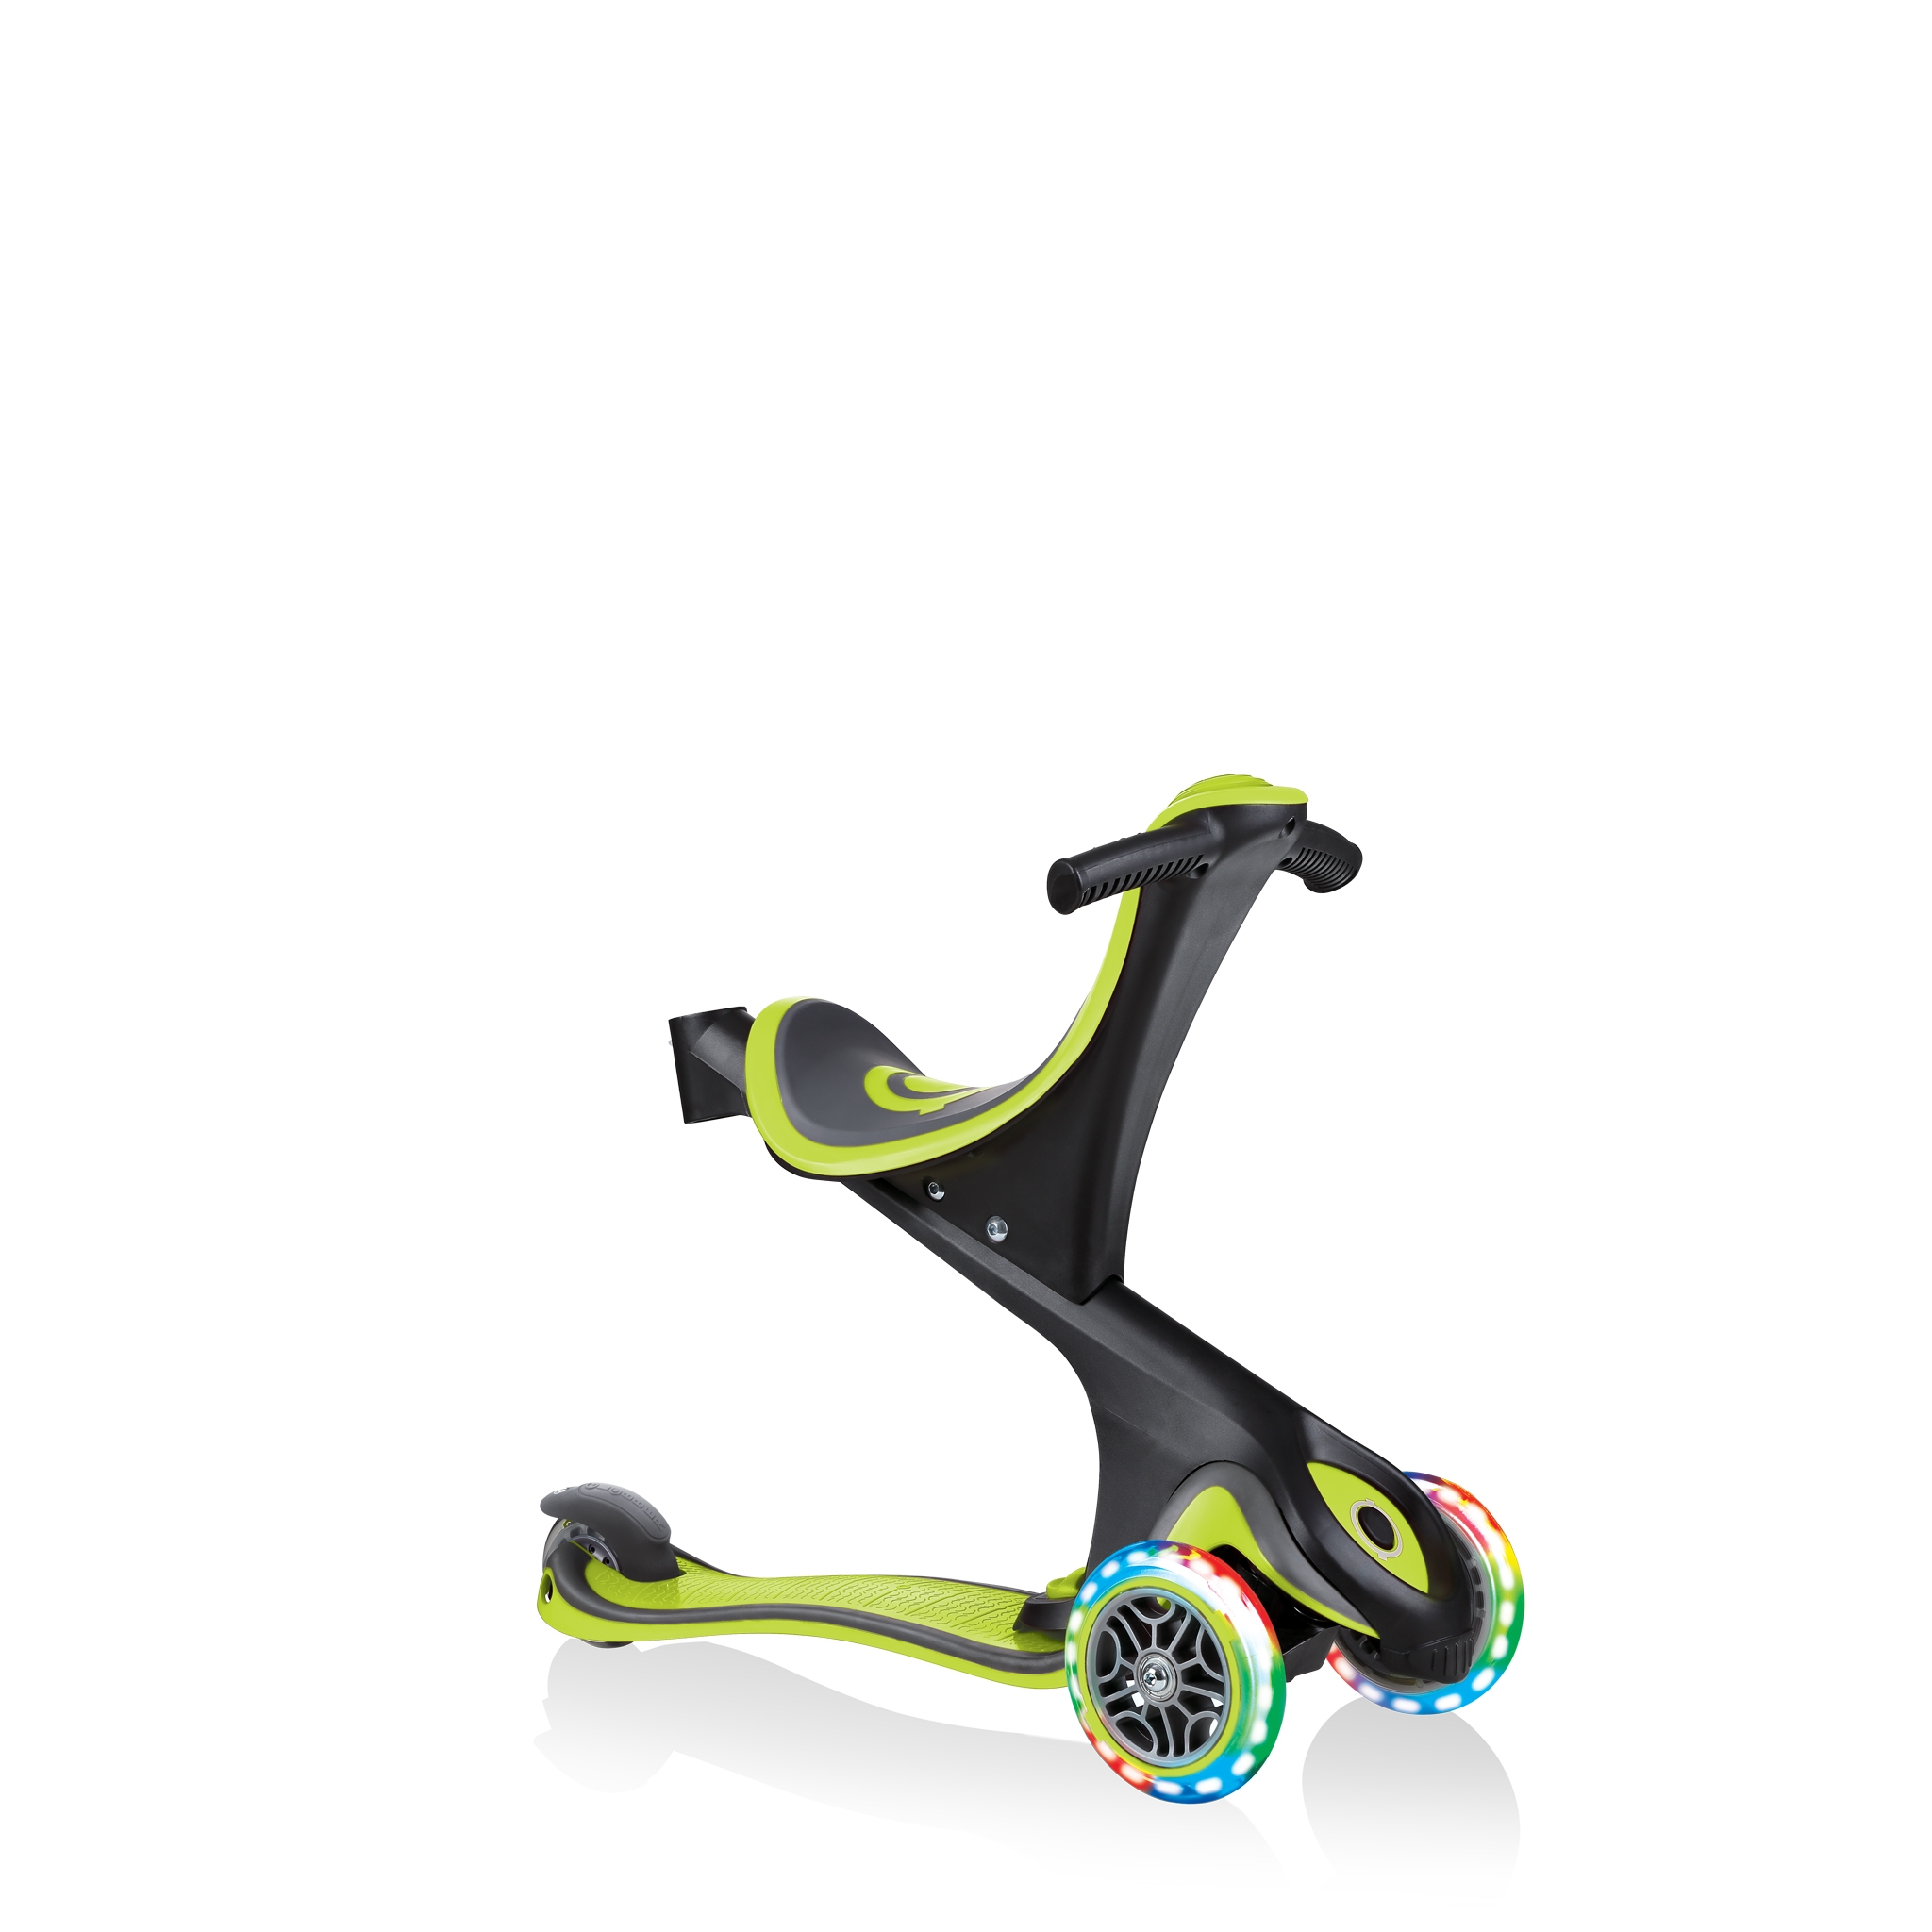 GO-UP-COMFORT-LIGHTS-scooter-with-seat-walking-bike-lime-green 2